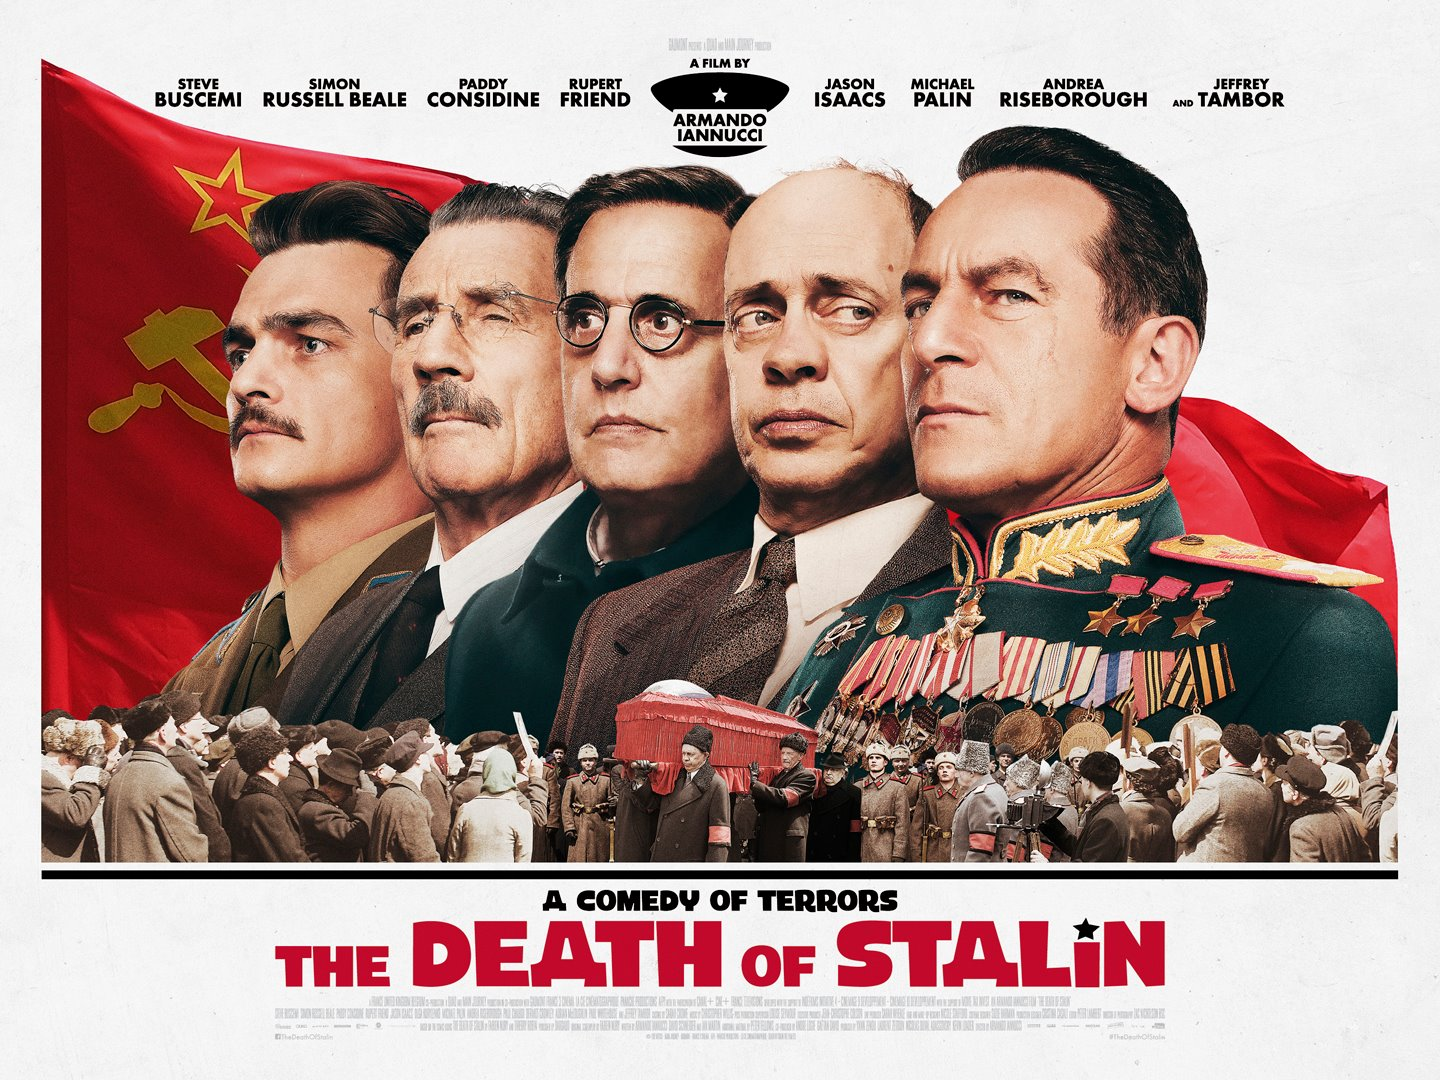 The Death of Stalin. A comedy of terrors. In cinemas ...